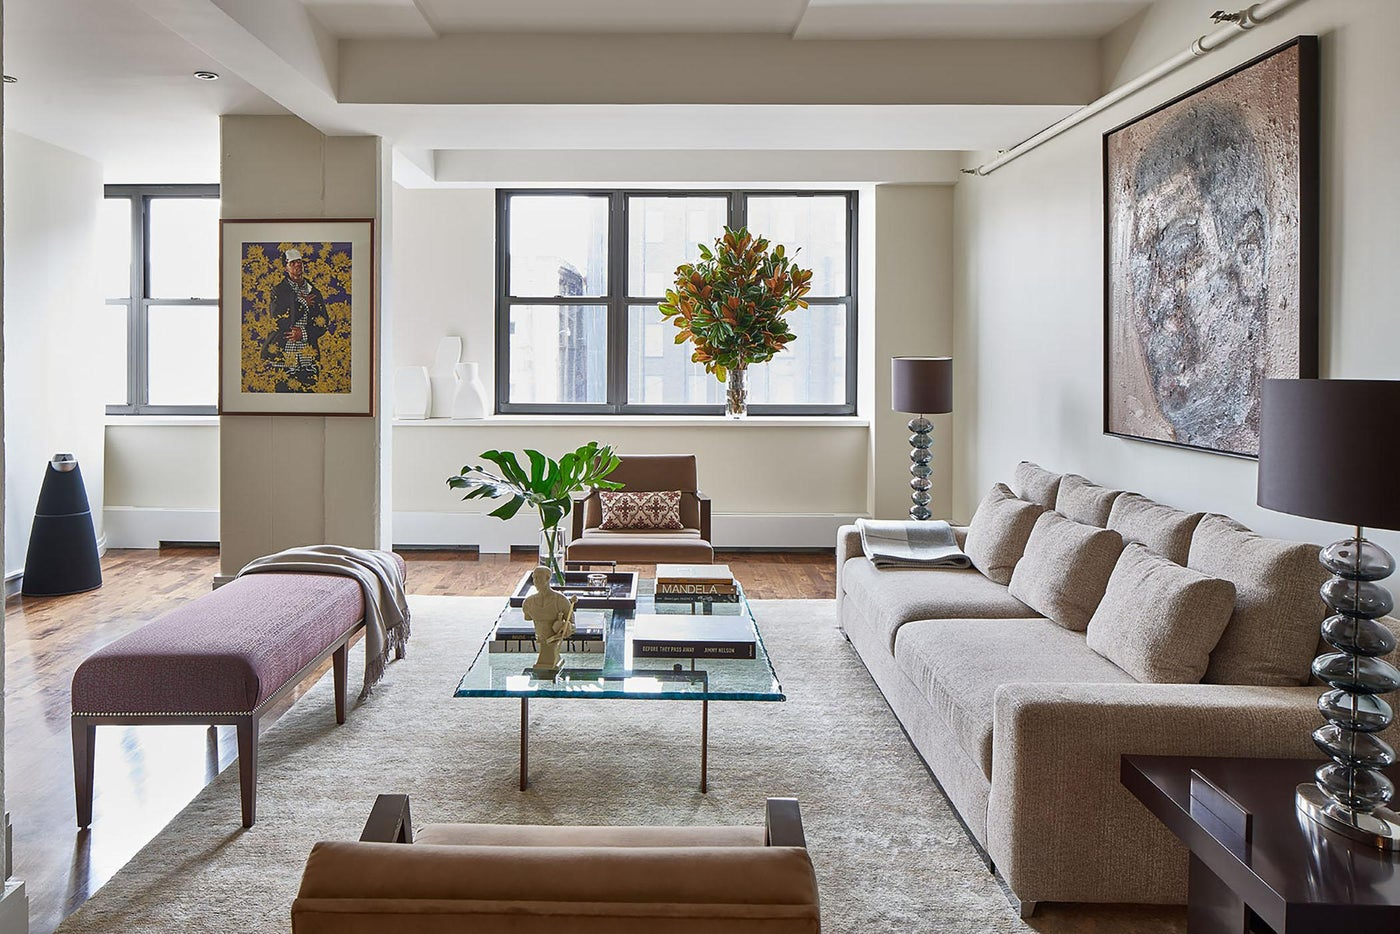 Living room - duplex, Prospect Heights, Brooklyn